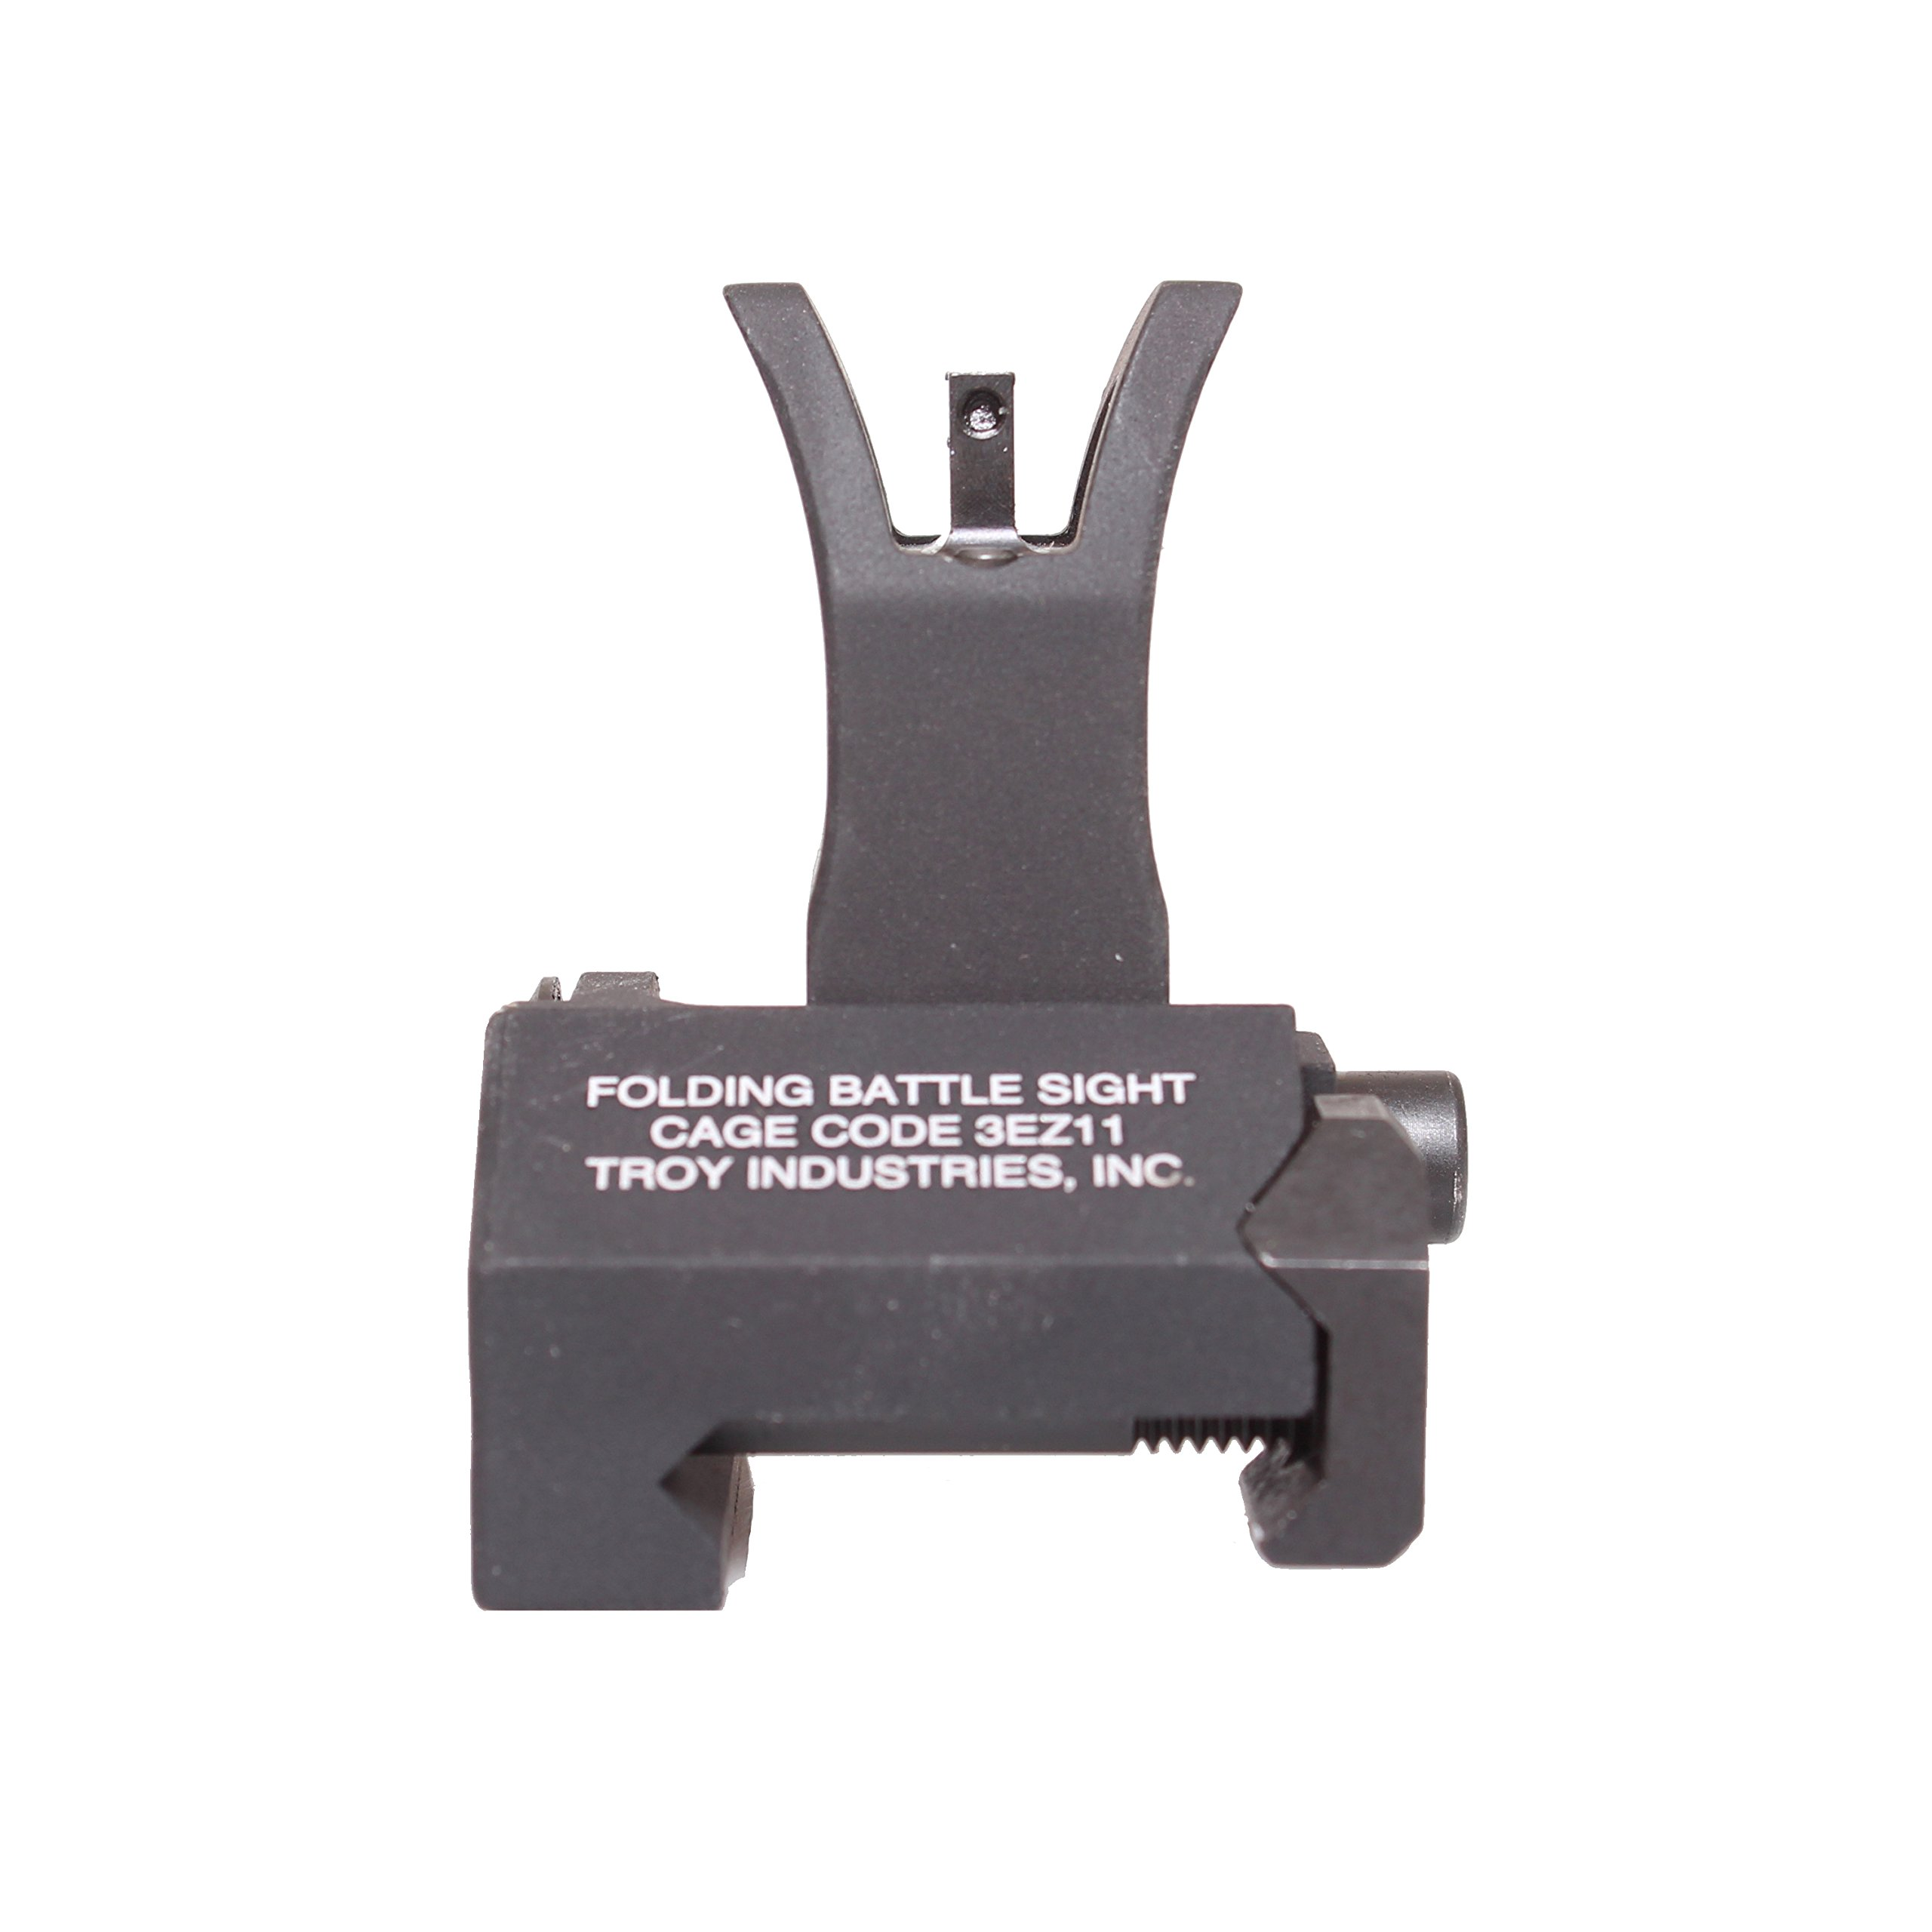 Troy Industries Front Folding Tritium M4 Style Battle Sight (Black ) by Troy Industries